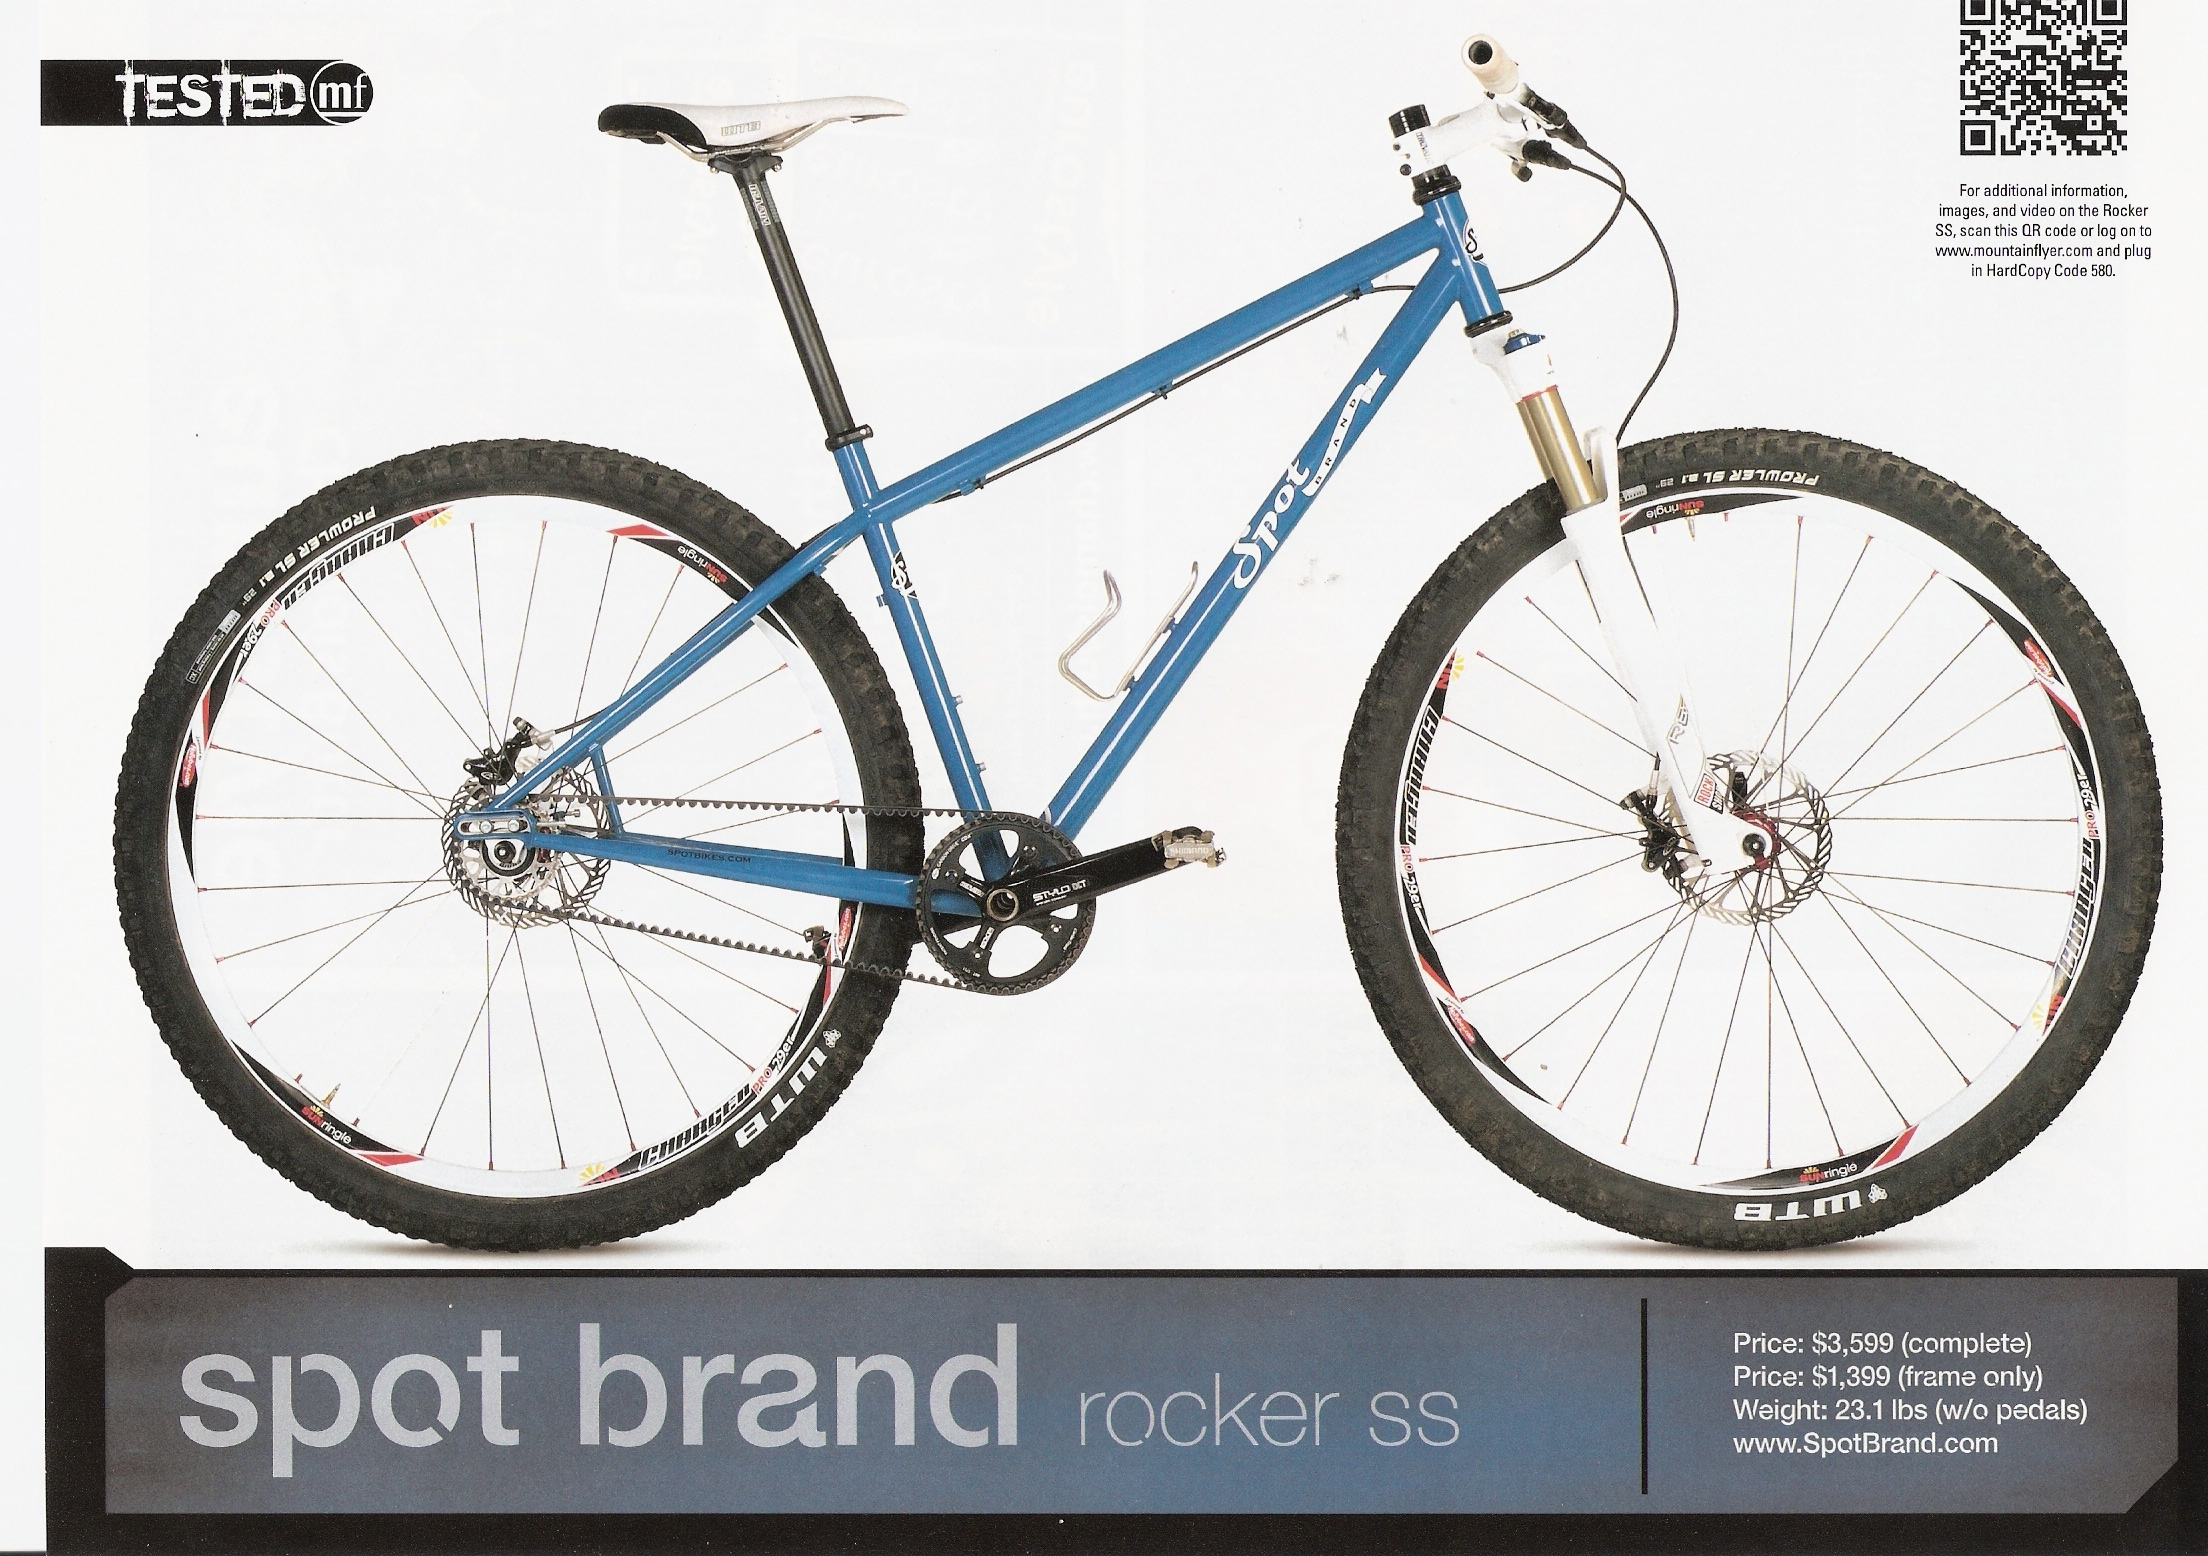 Mountain Flyer Magazine gives high marks to the Spot Brand Rocker SS singlespeed bike featuring Gates CenterTrack drive.